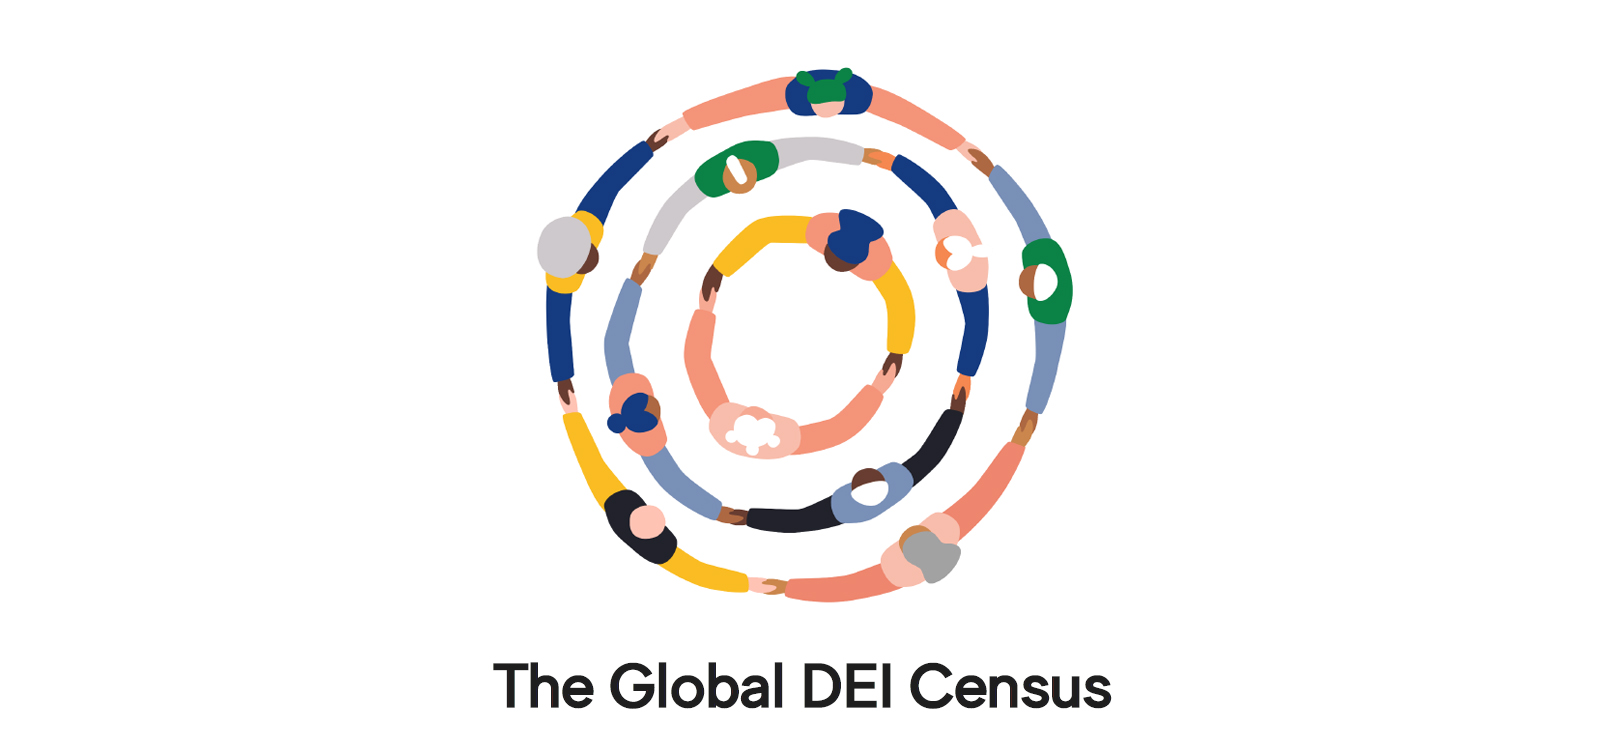 The Global DEI Census